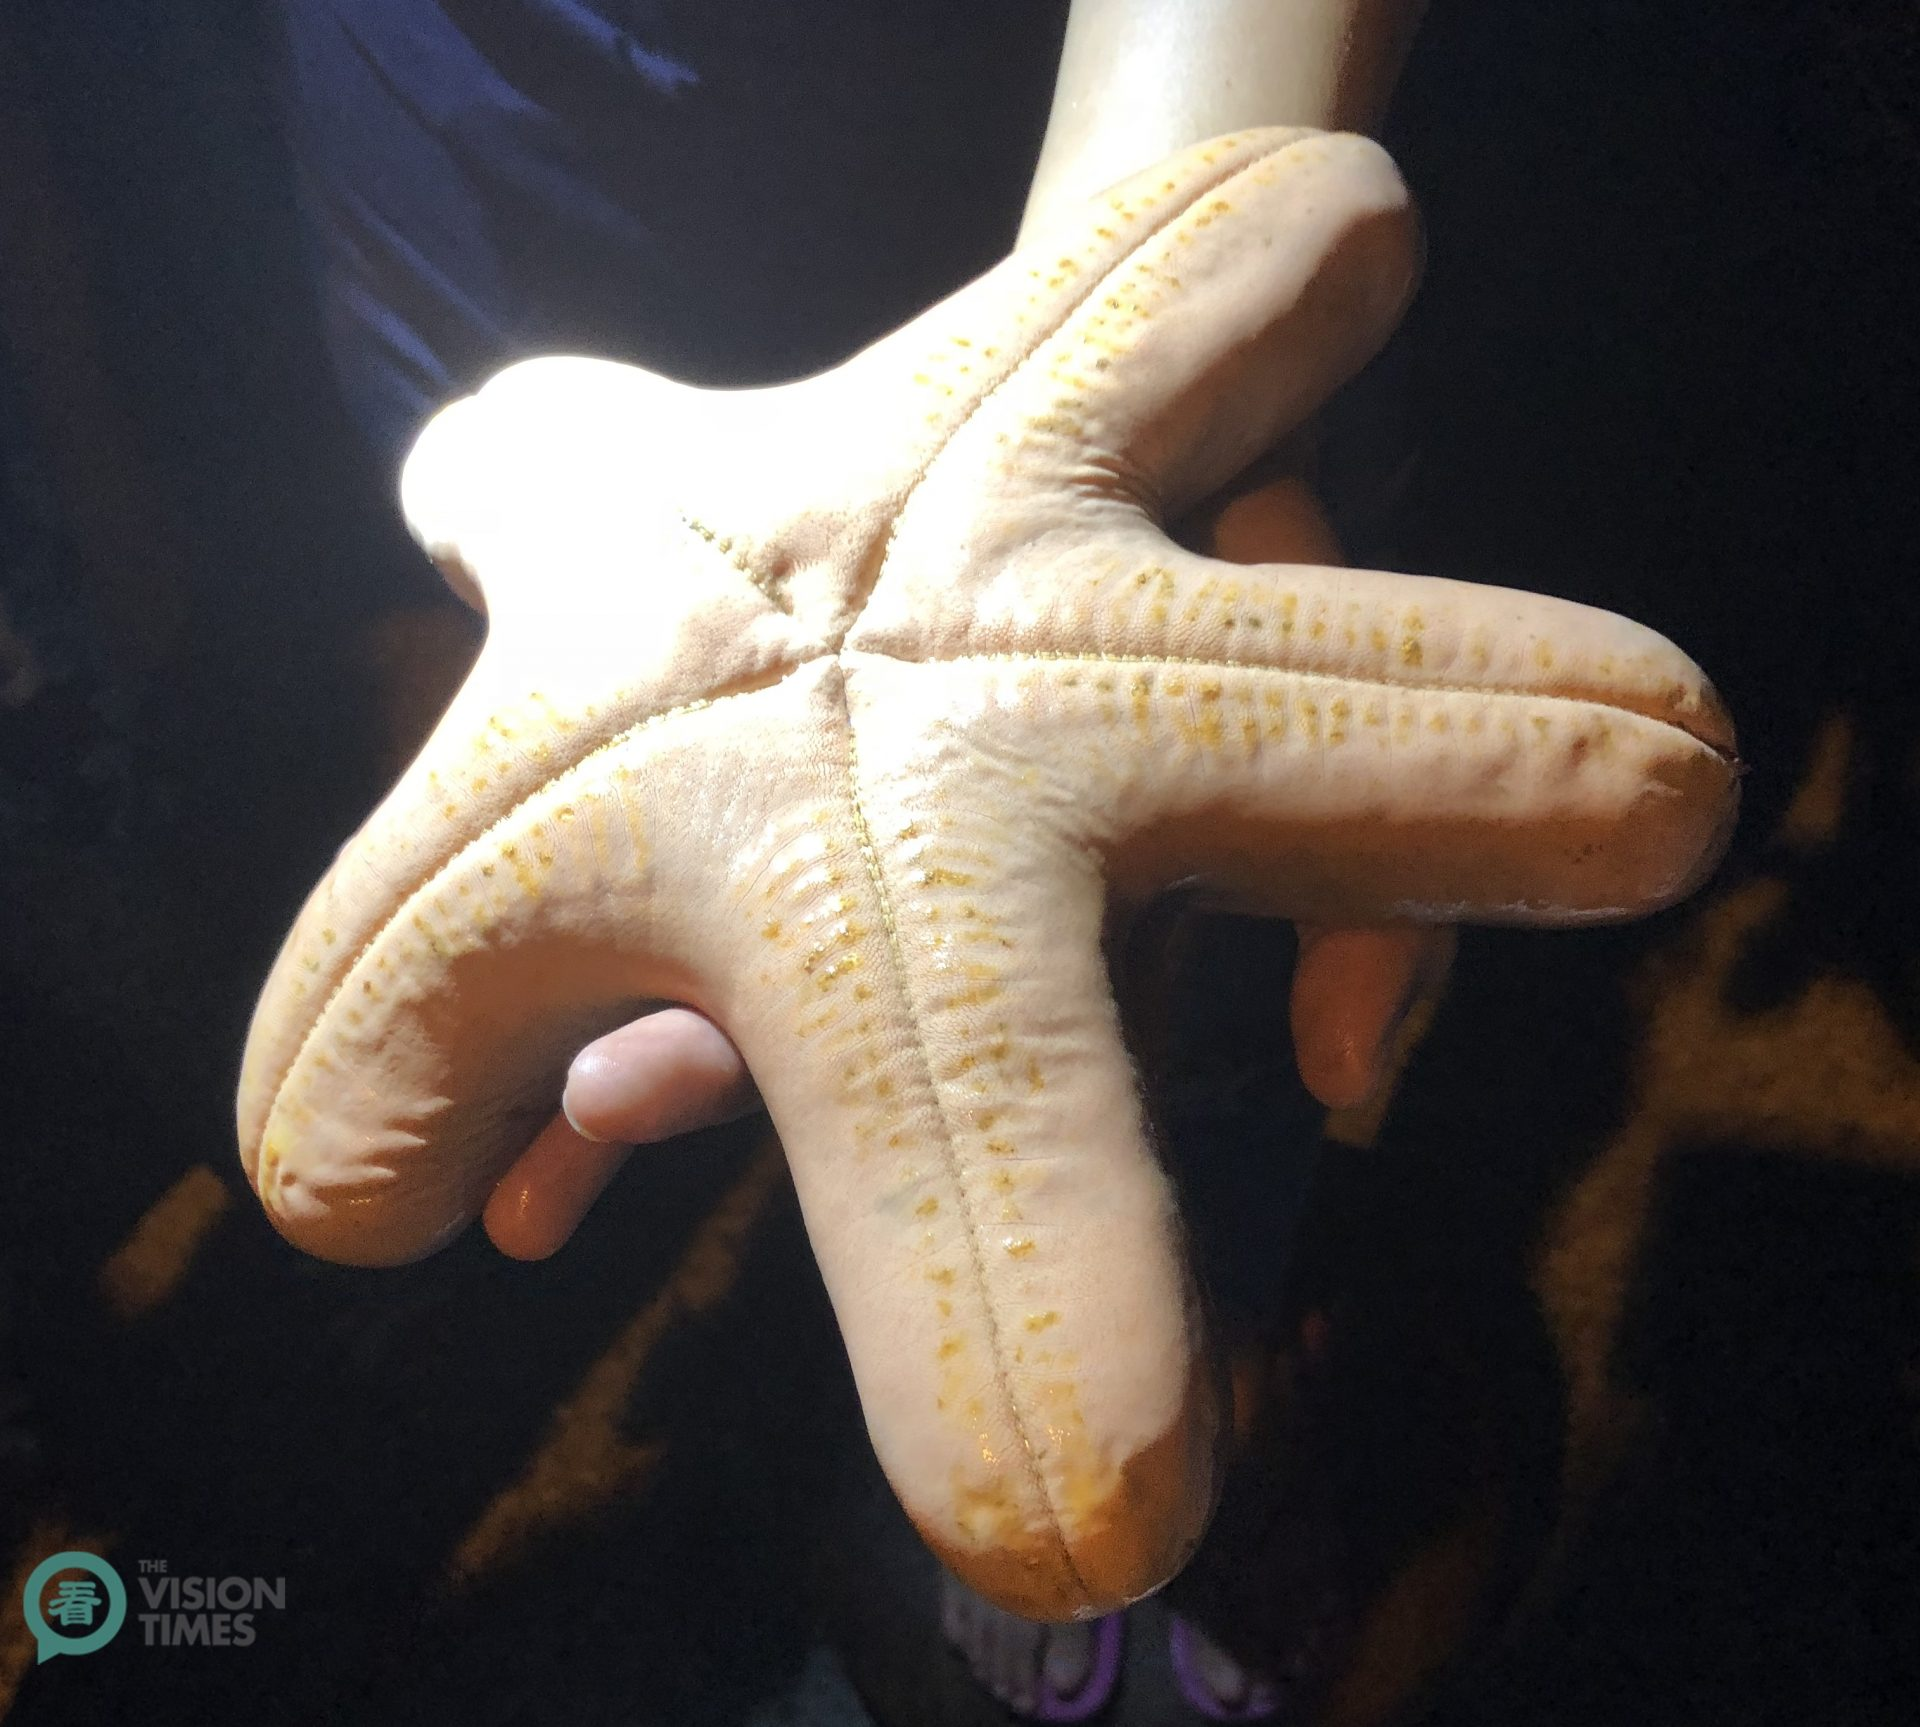 Visitors can have a guided night tour by scooter to see the intriguing yellow starfish. (Image: Billy Shyu / Vision Times)